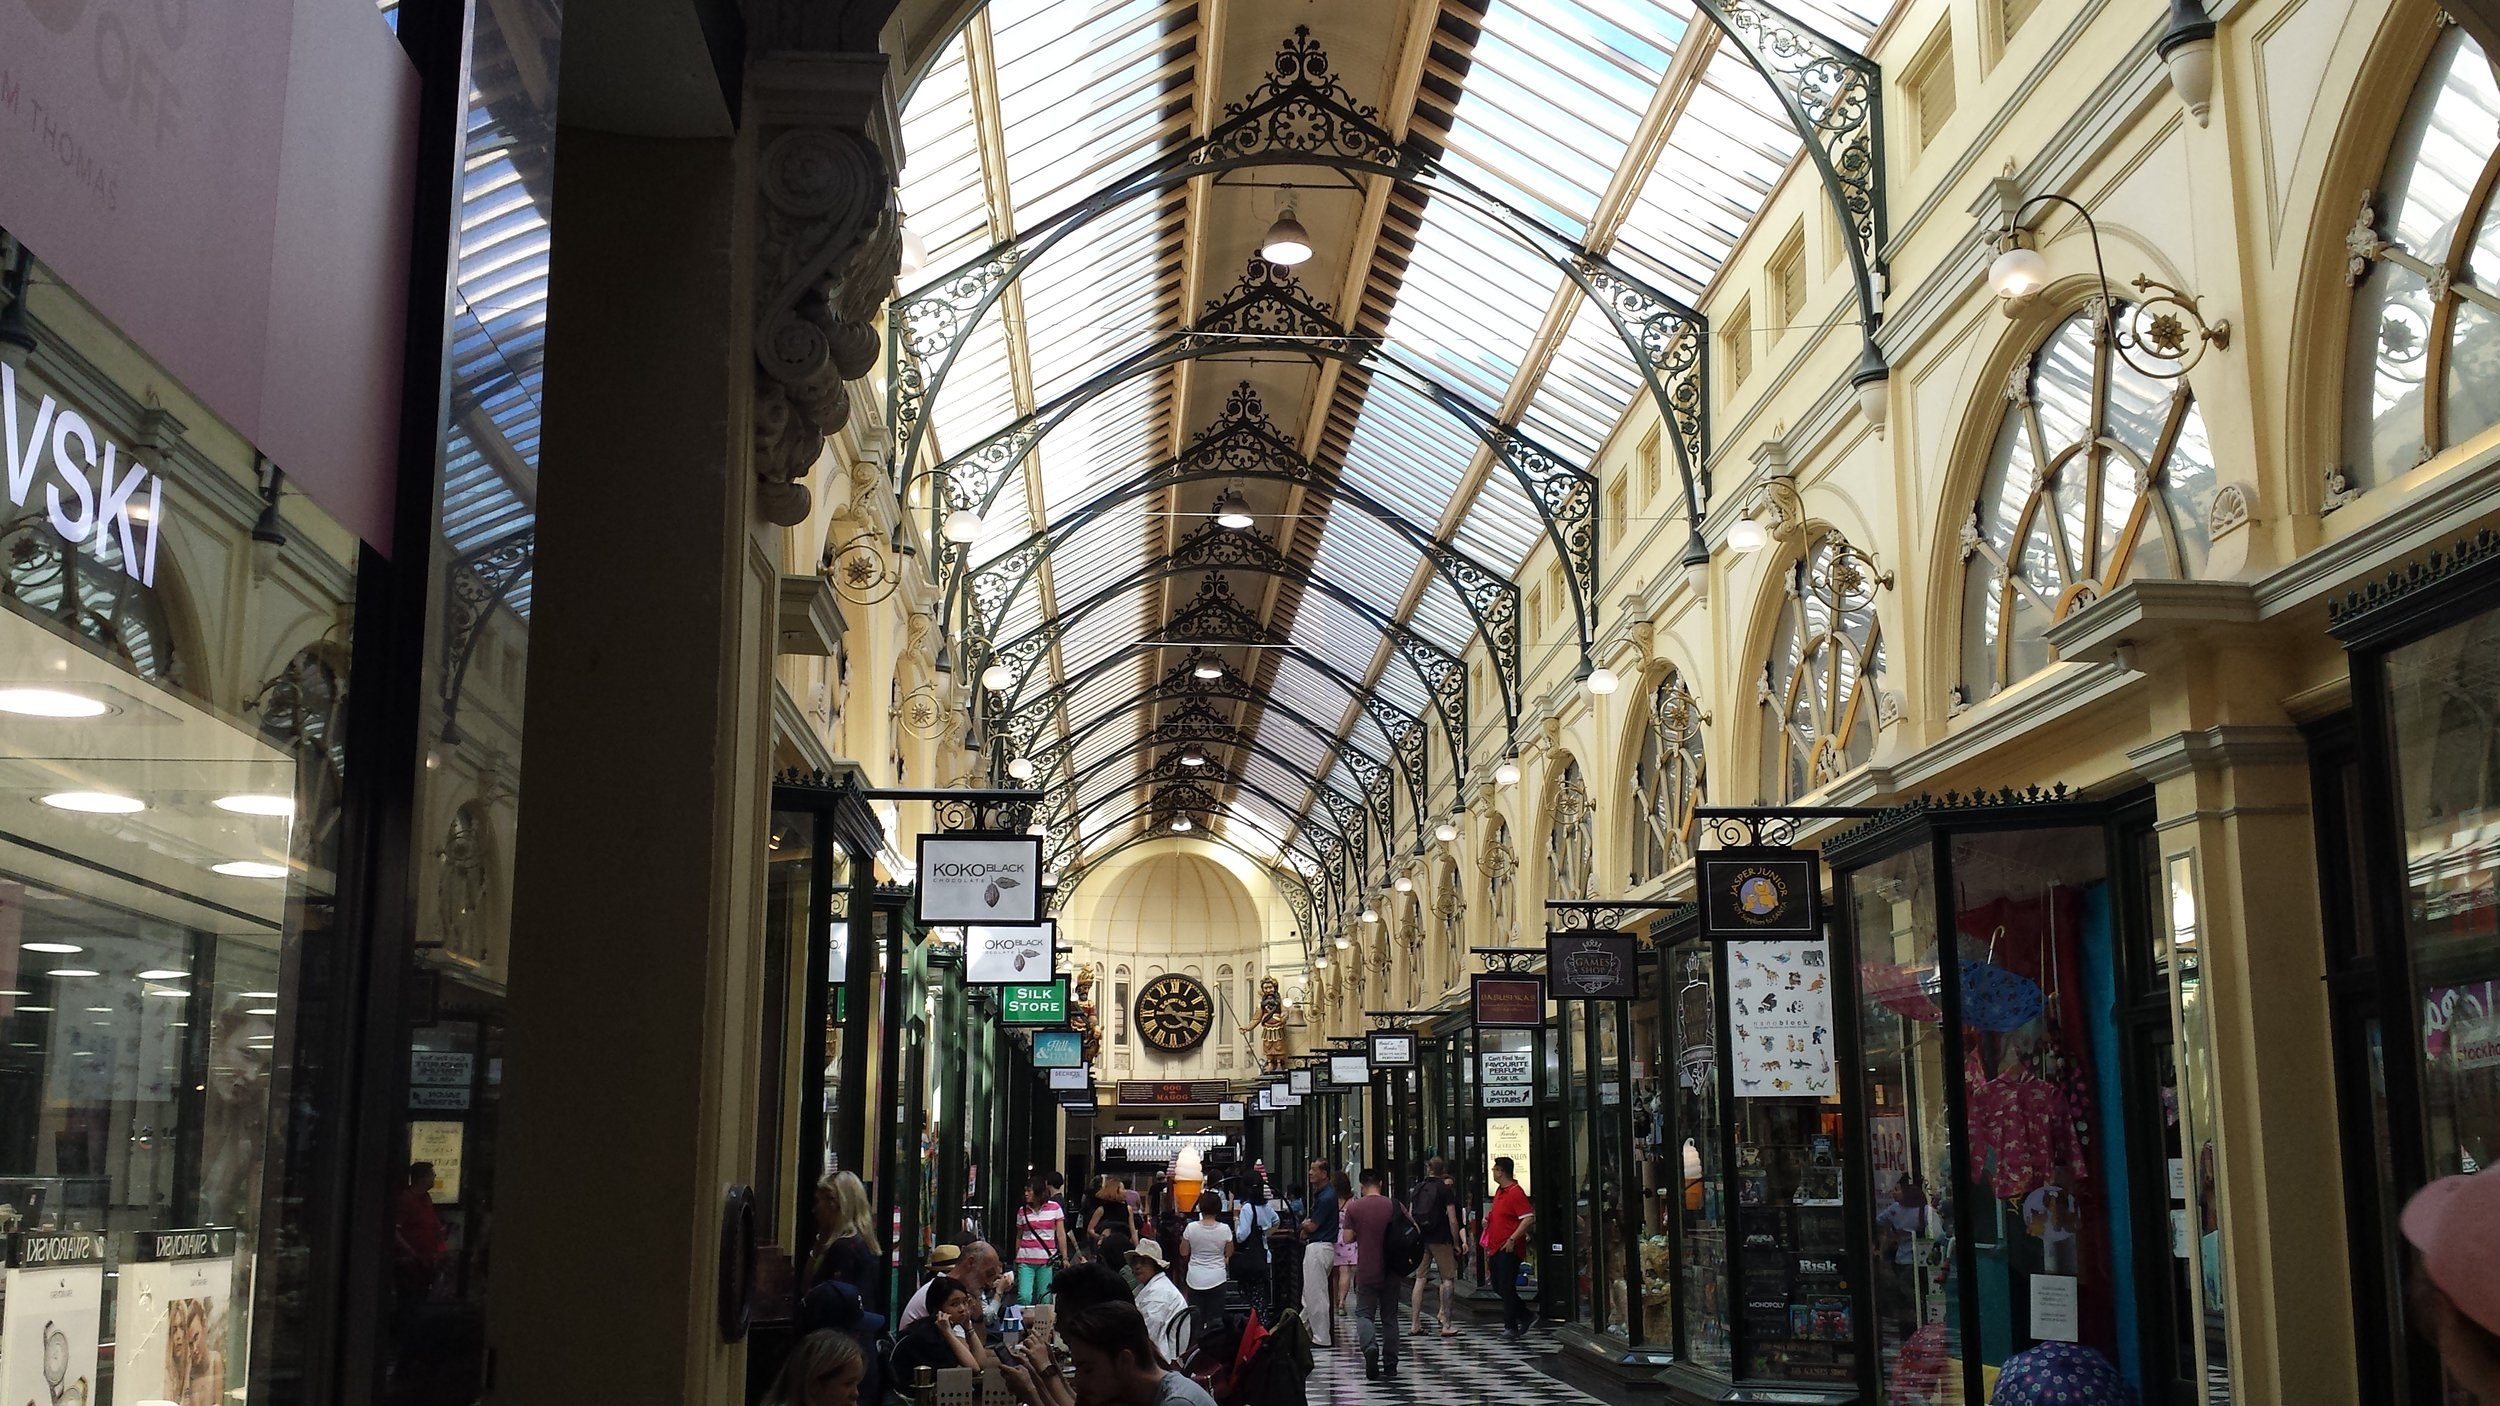 One of the many arcades hidden among Melbourne's streets.